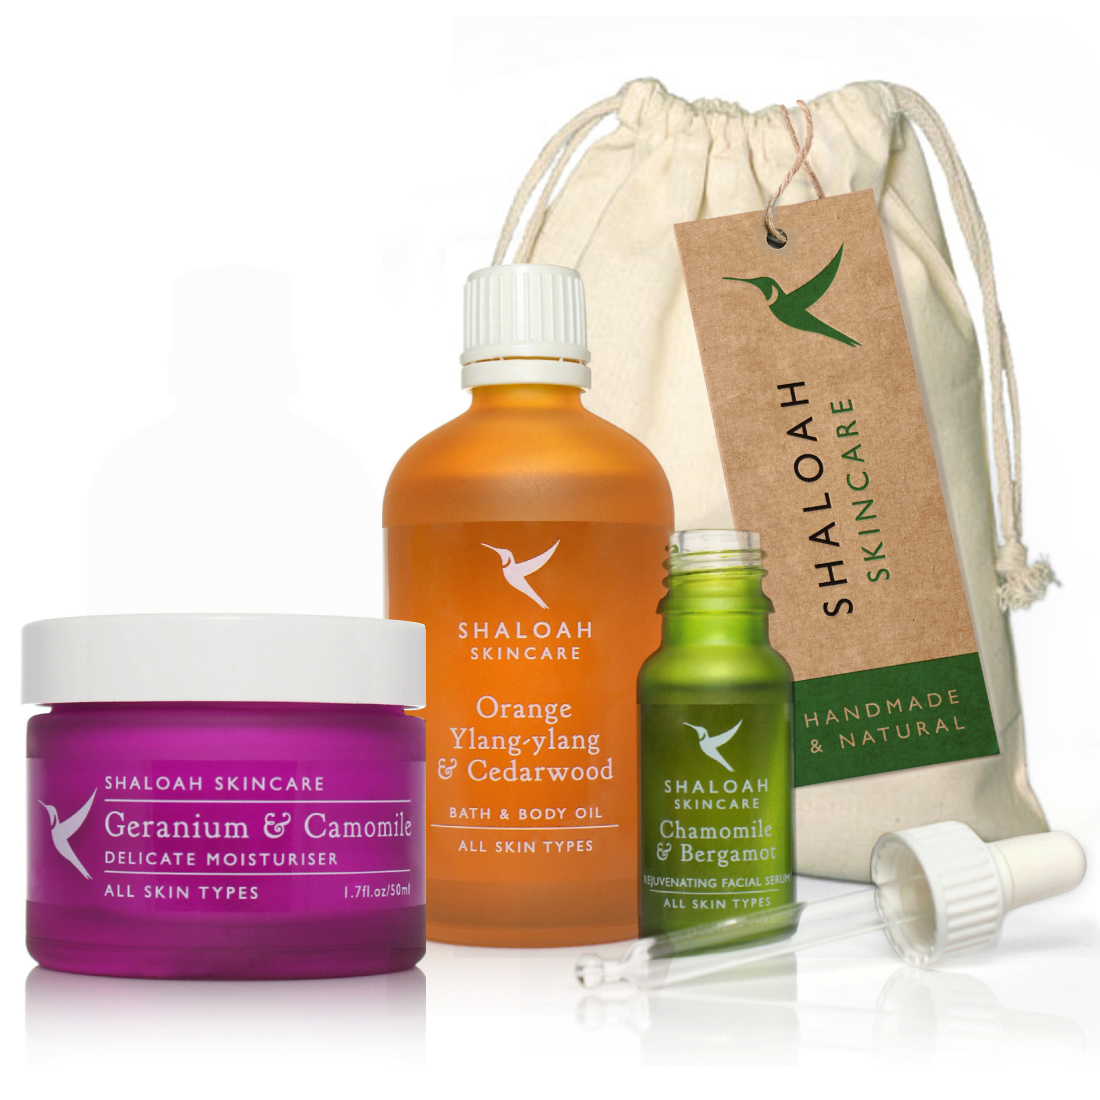 Luxury Natural Skincare Gift Set Of 3 Full Size Products